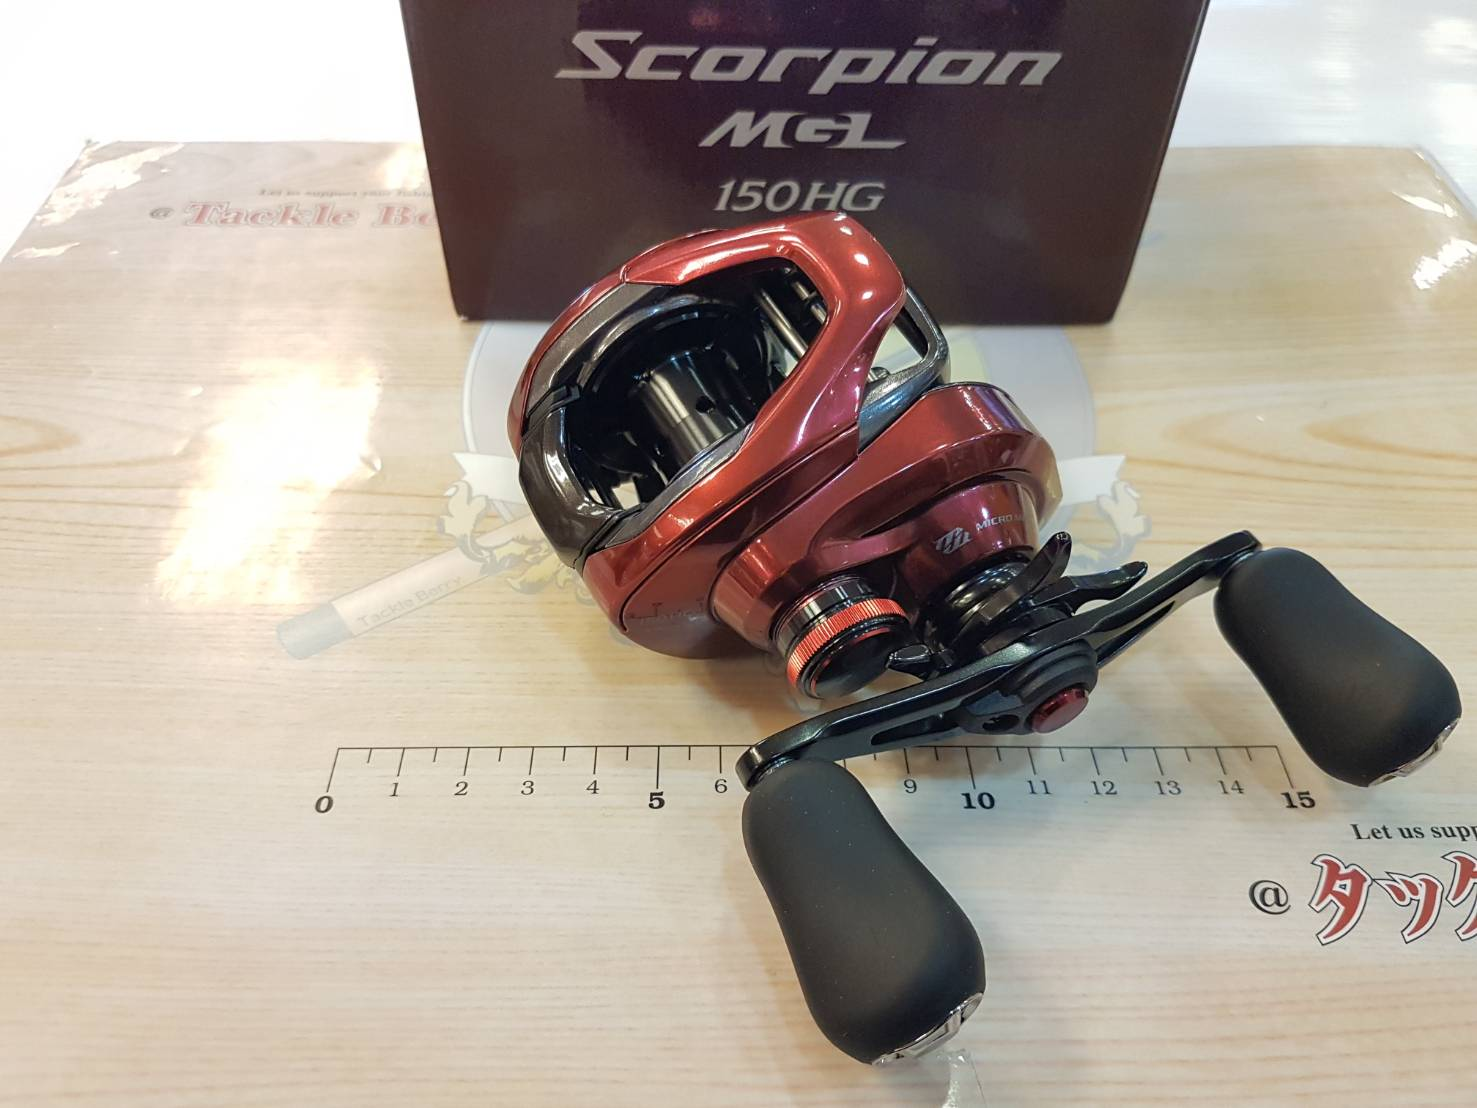 USED REEL SHIMANO Scorpion MGL 150HG